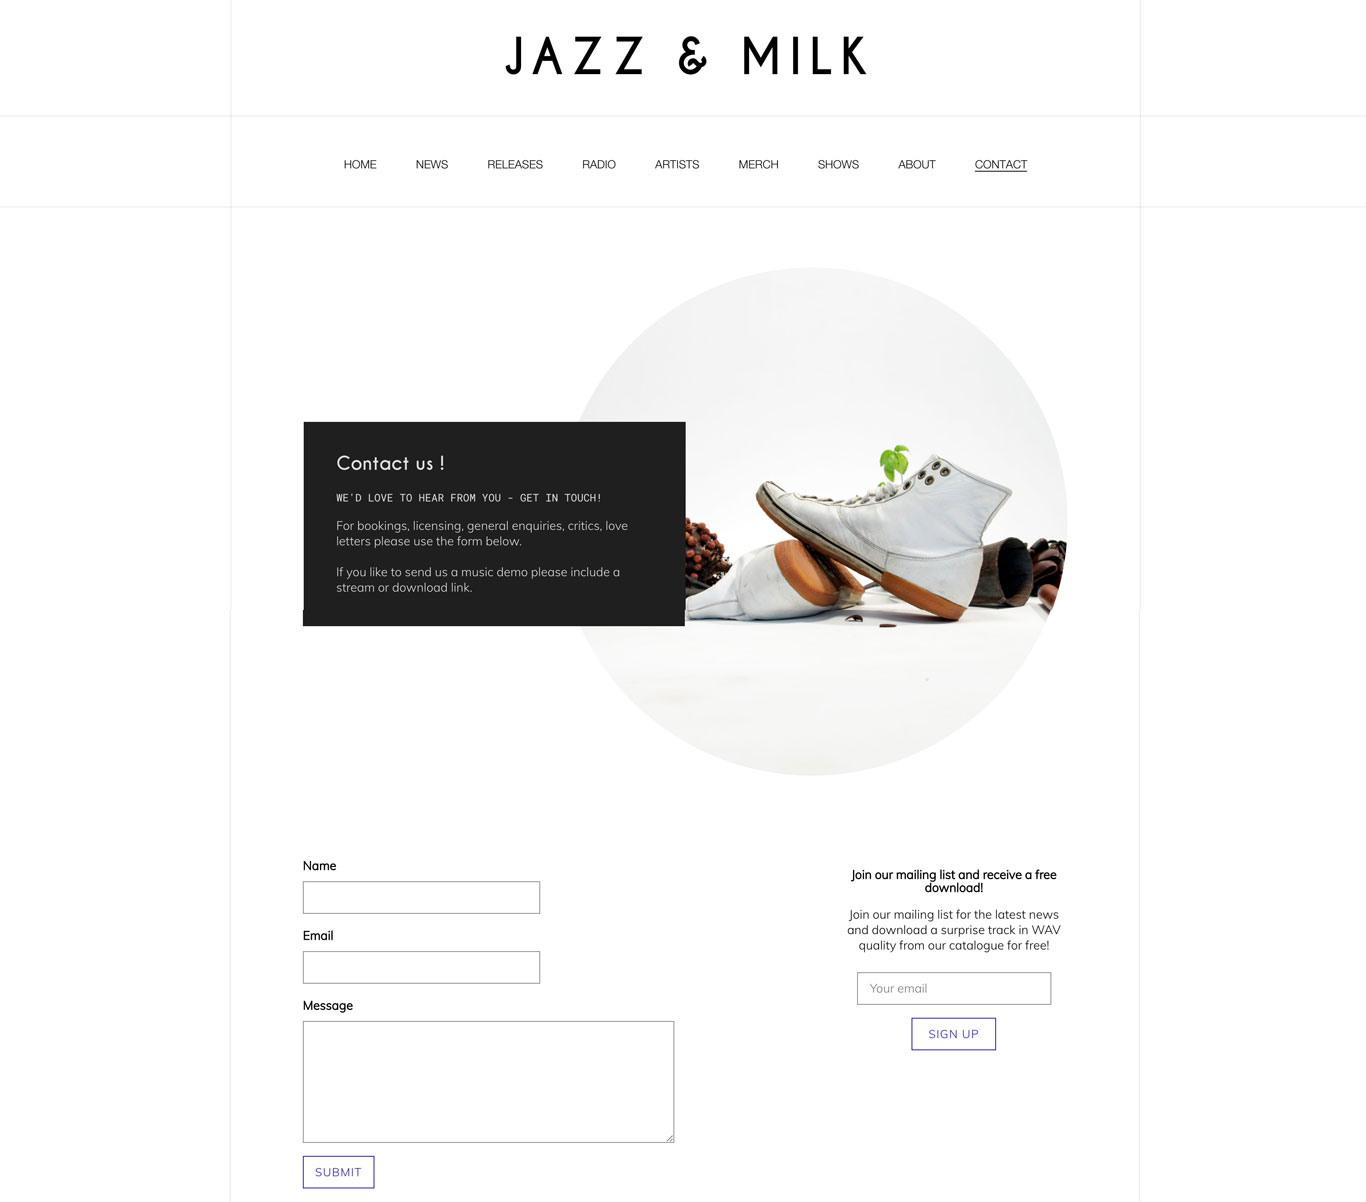 Jazz and Milk Record label website